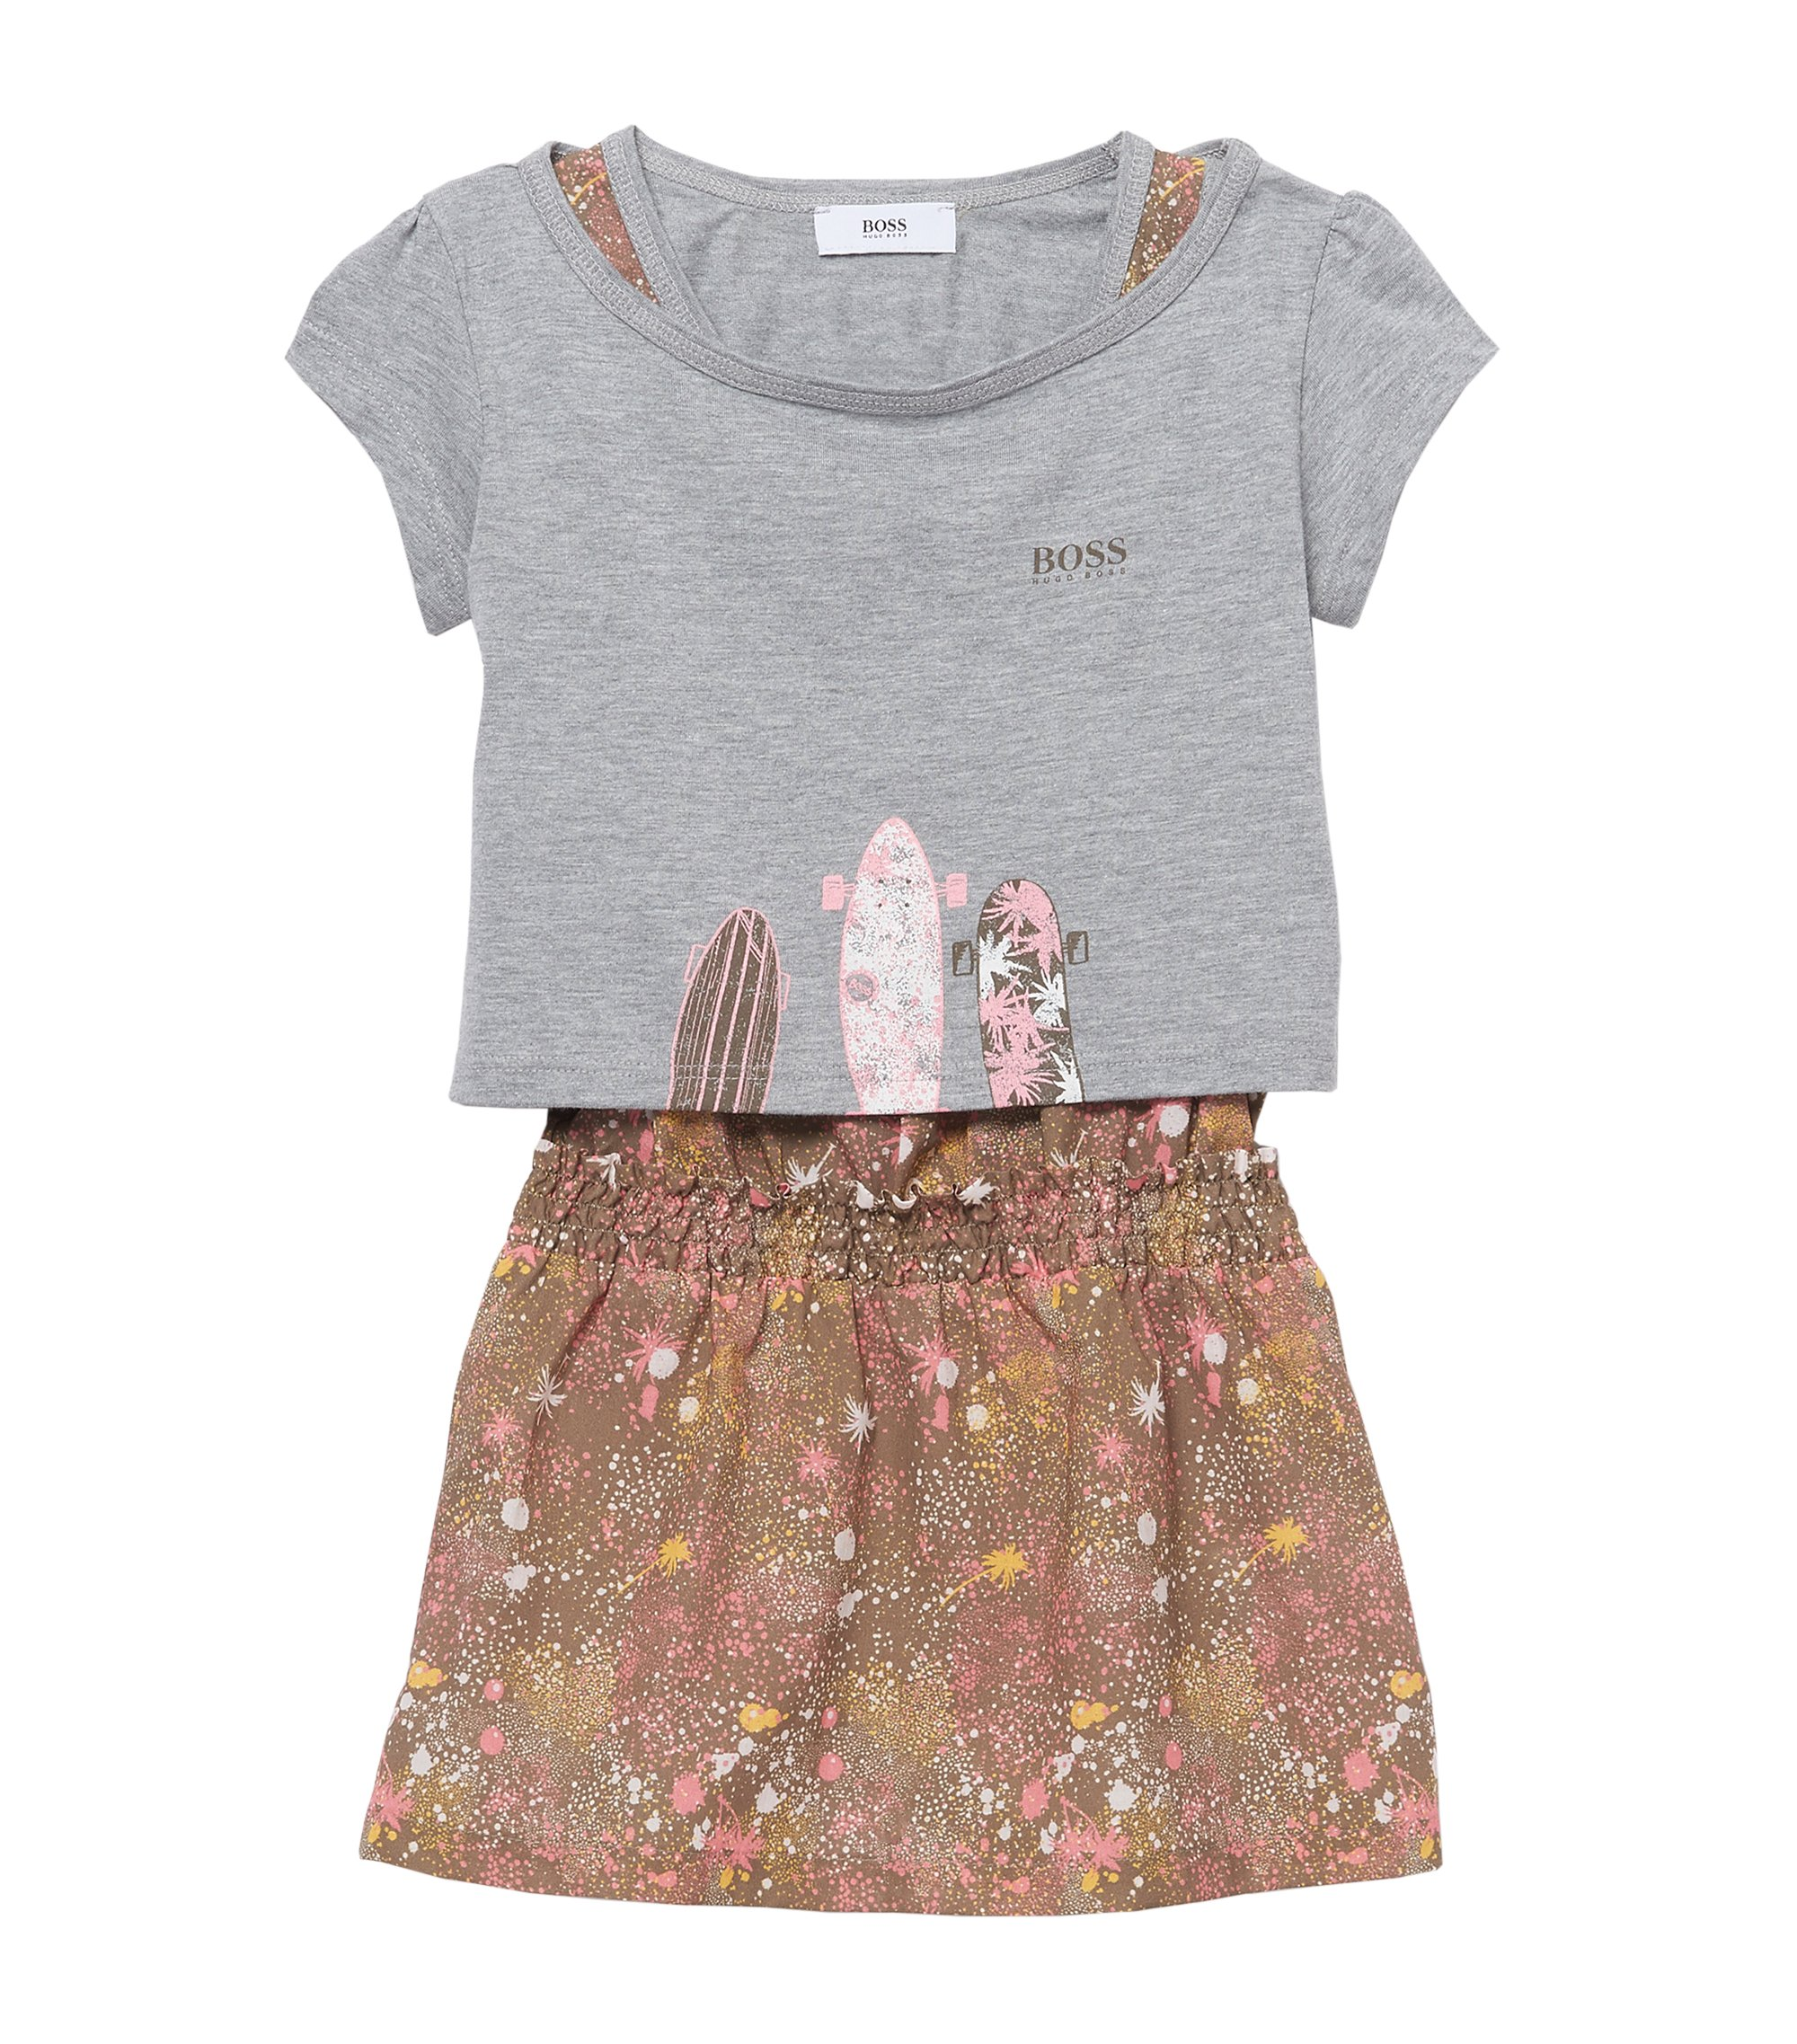 'J18101' | Cotton T-Shirt, Dress Set, Patterned